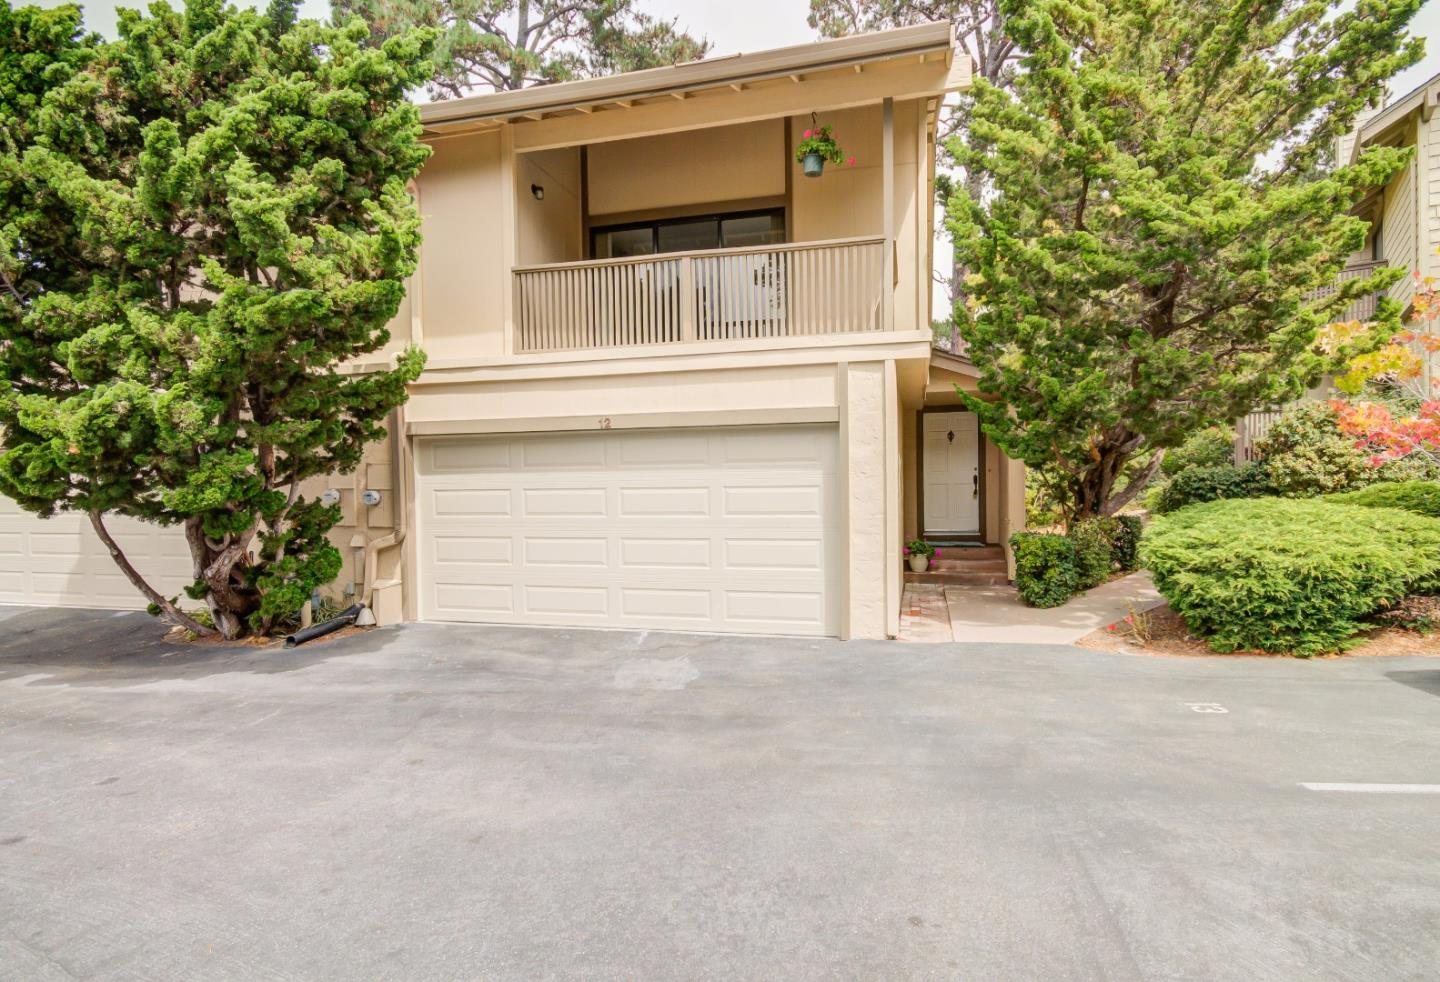 Townhouse for Sale at 1360 Josselyn Canyon Road 1360 Josselyn Canyon Road Monterey, California 93940 United States